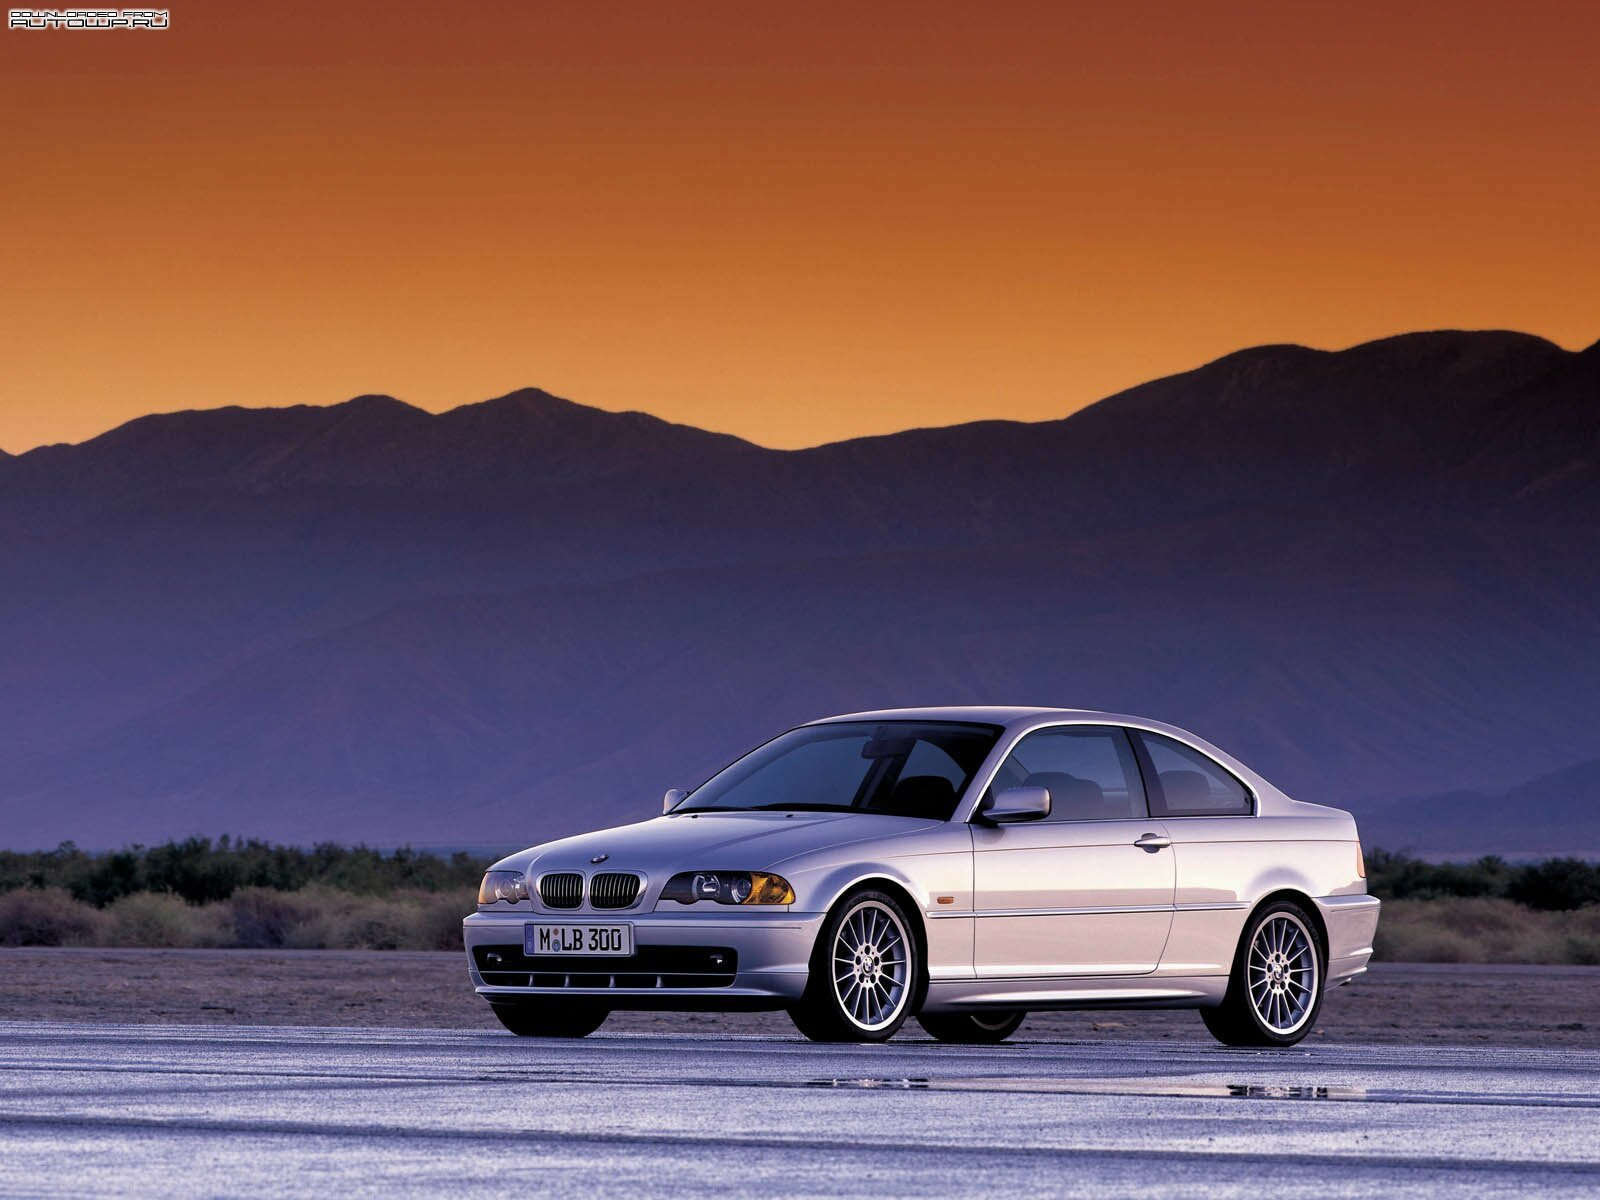 bmw 3 series e46 coupe picture 62801 bmw photo gallery. Black Bedroom Furniture Sets. Home Design Ideas